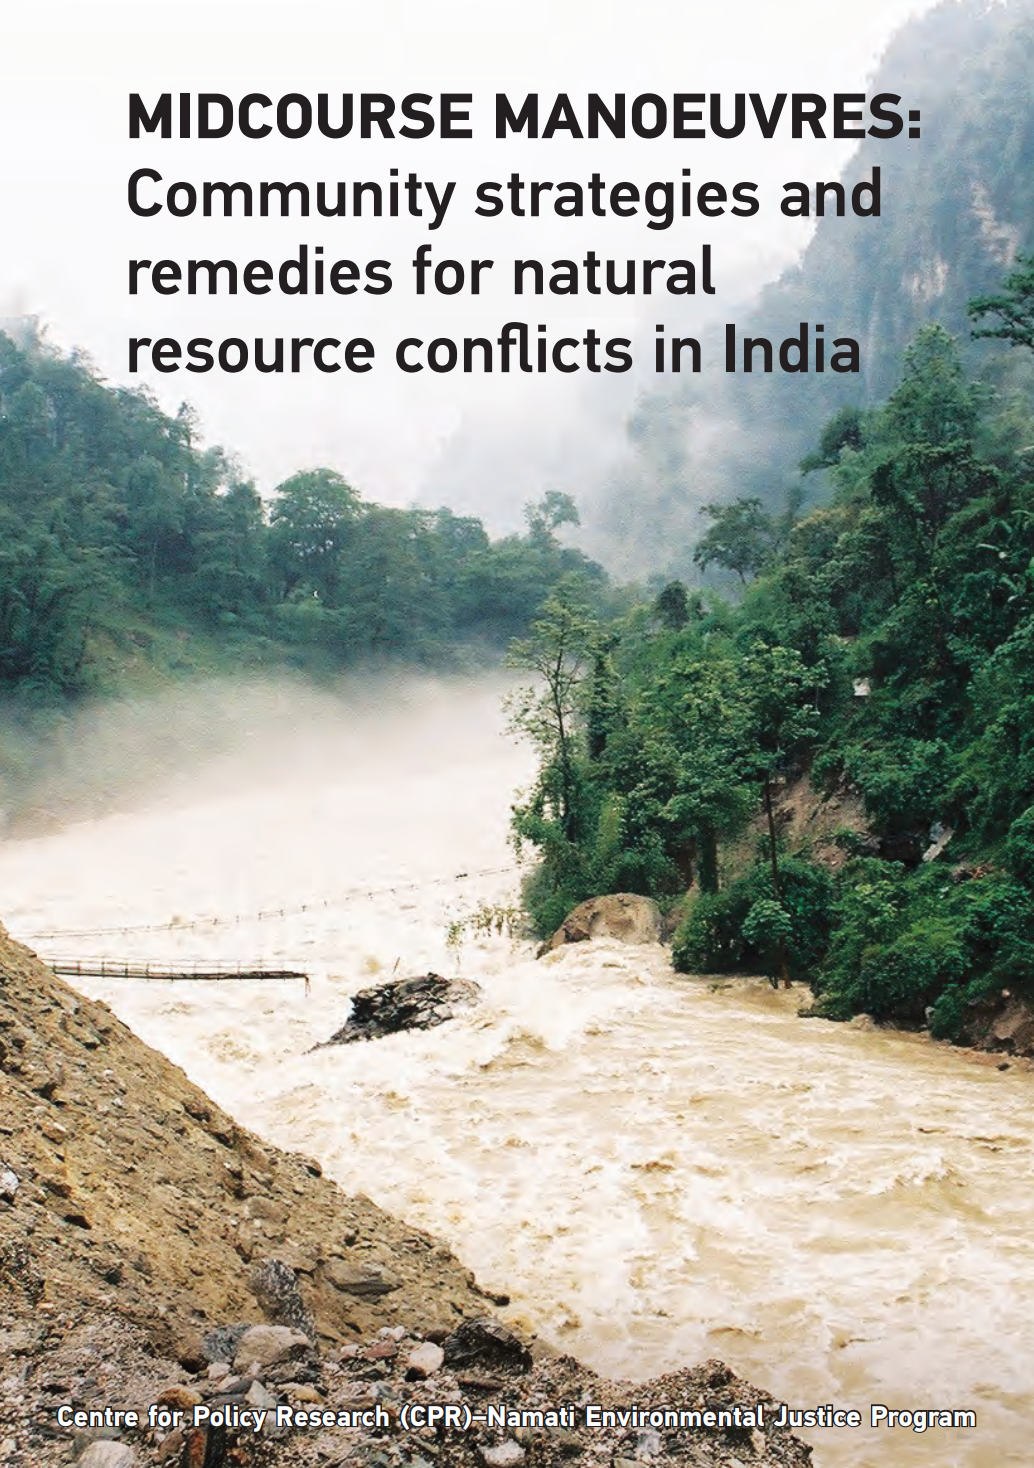 Cover photo of Midcourse Manoeuvres: Community Strategies and Remedies for Natural Resource Conflicts in India